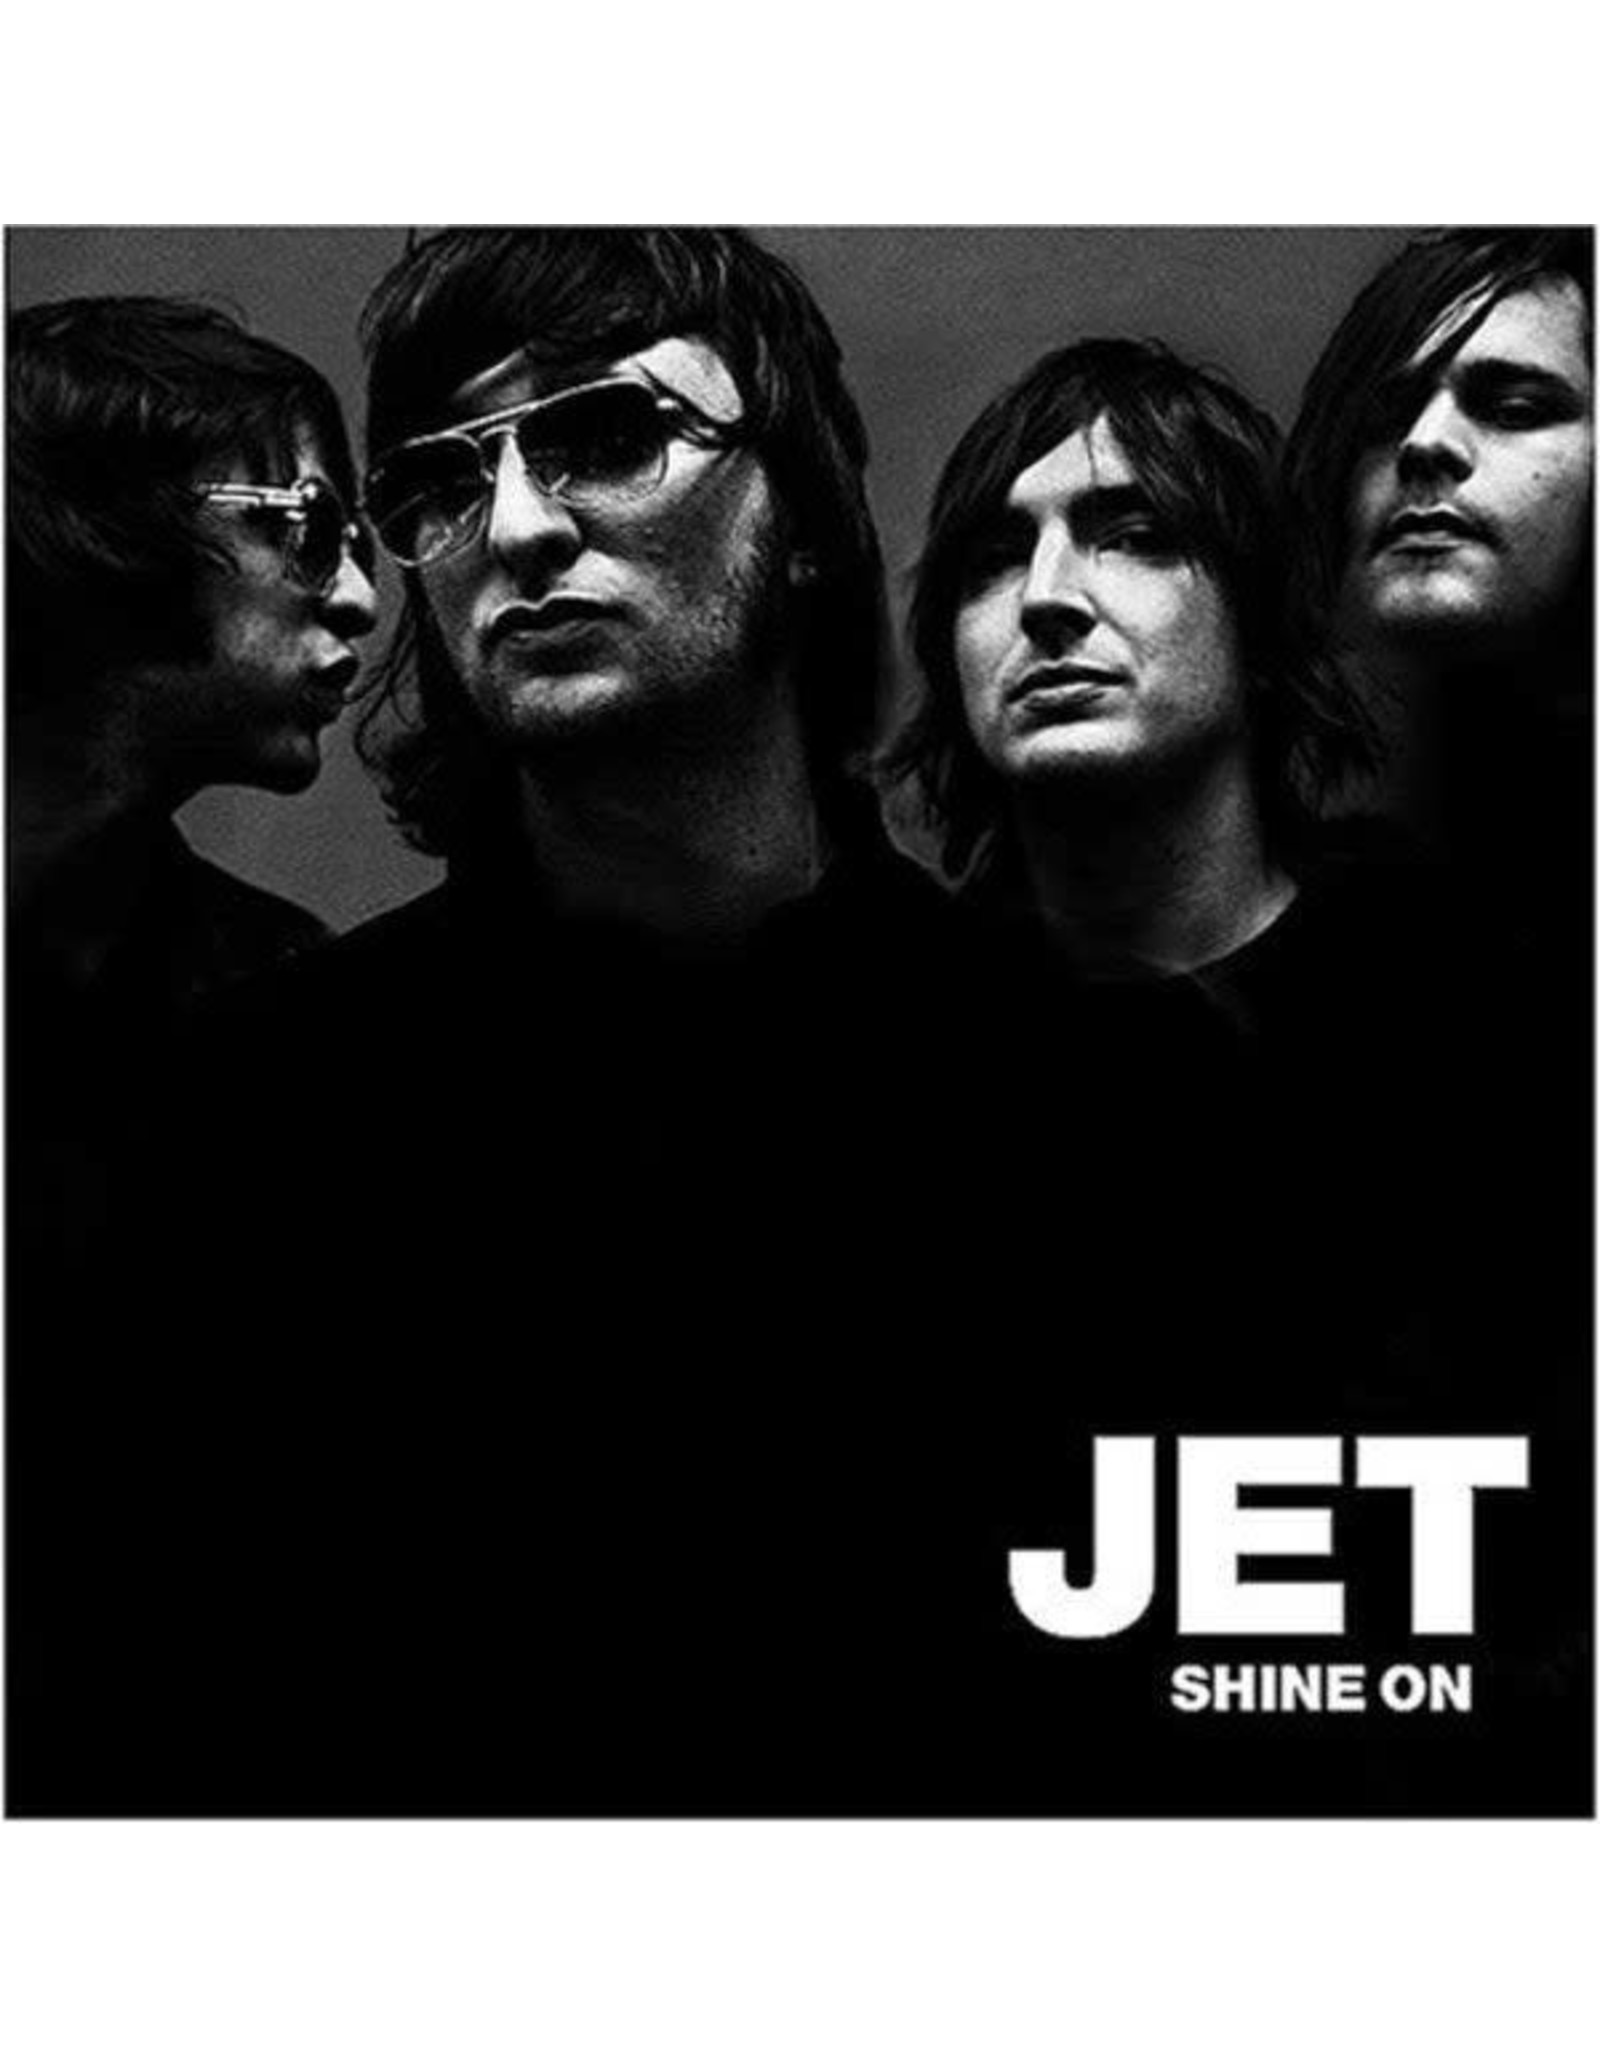 Vinyl Jet - Shine On.   Final Sale